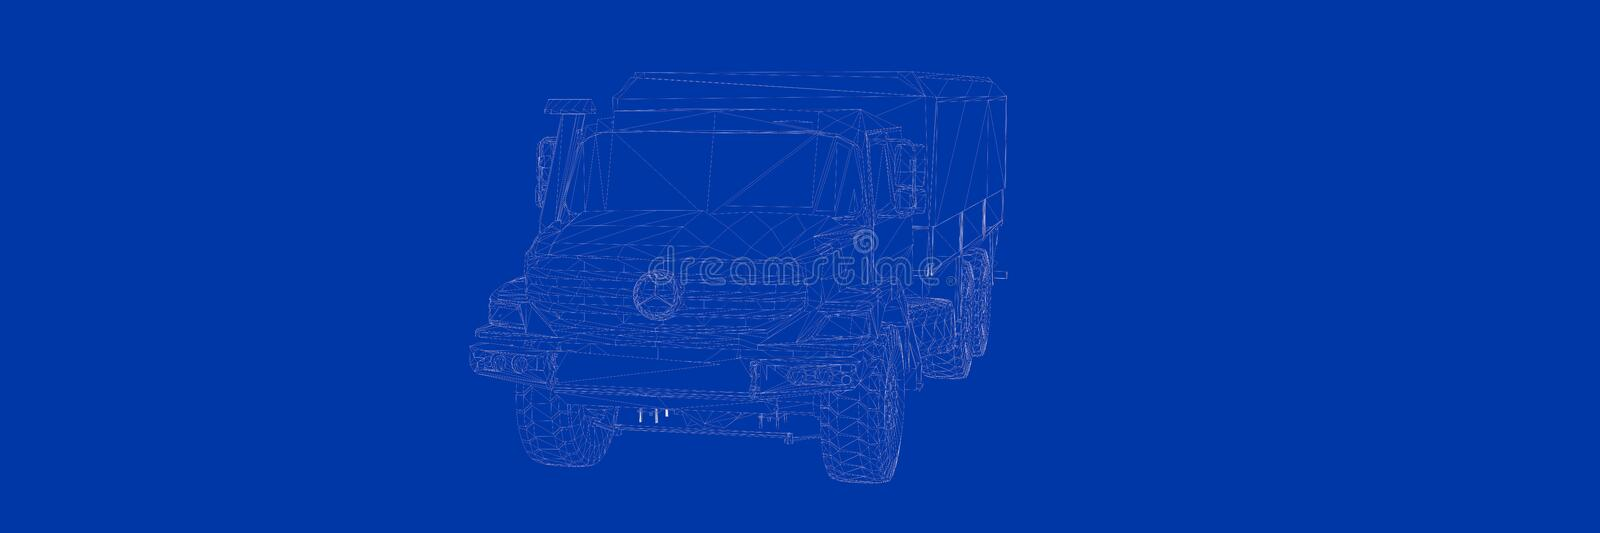 3d rendering of a truck on a blue background blueprint stock illustration